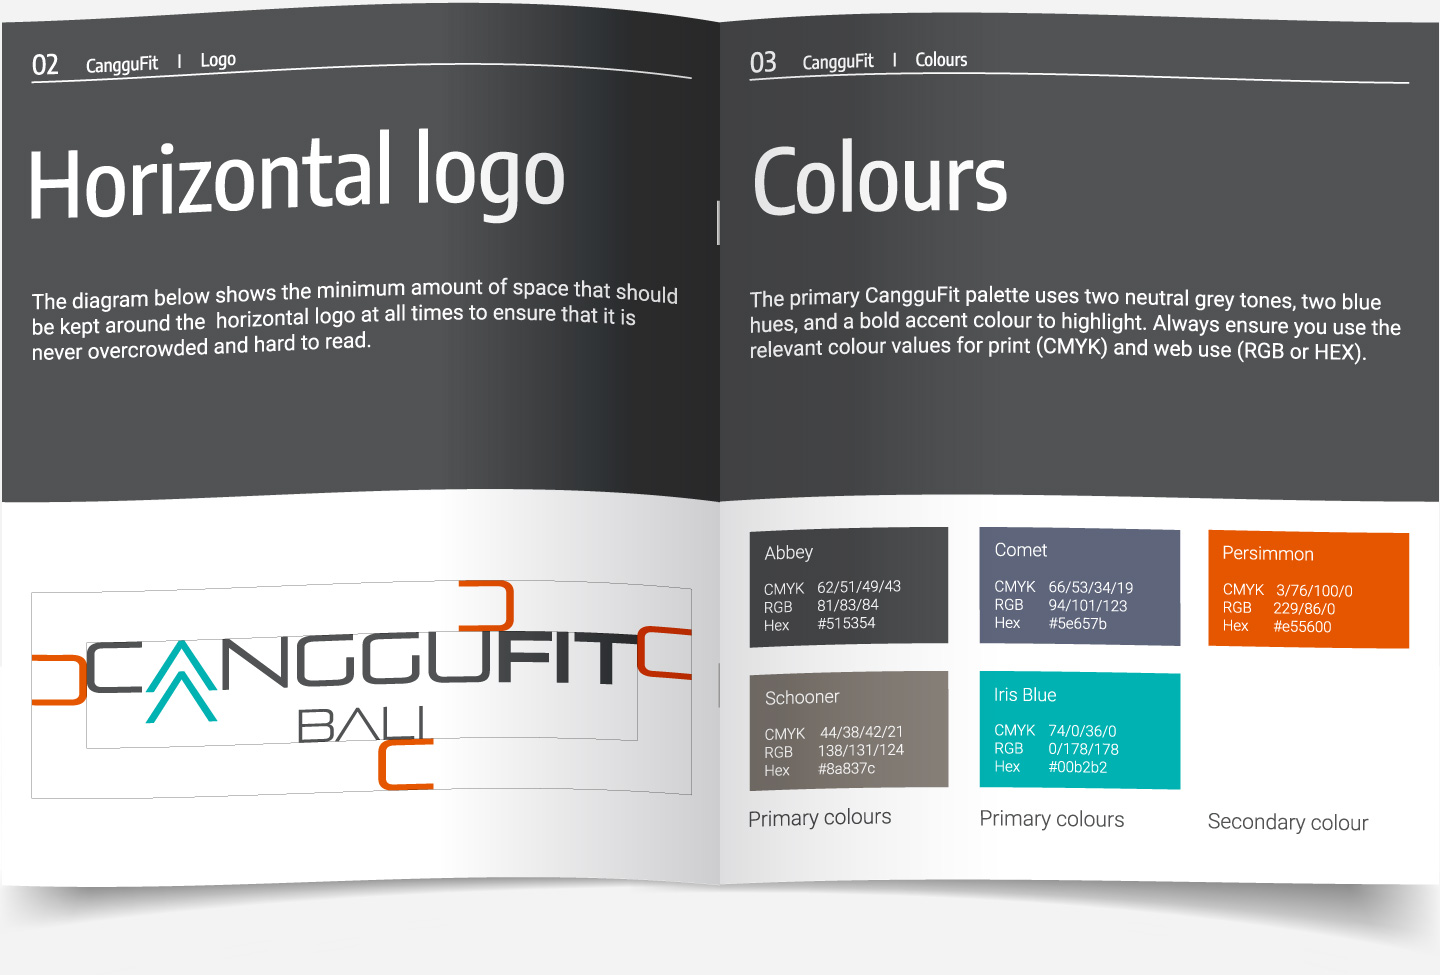 Brand guidelines booklet for CangguFit showing logo usage and spacing, colour and font specification, designed by Kabo Creative